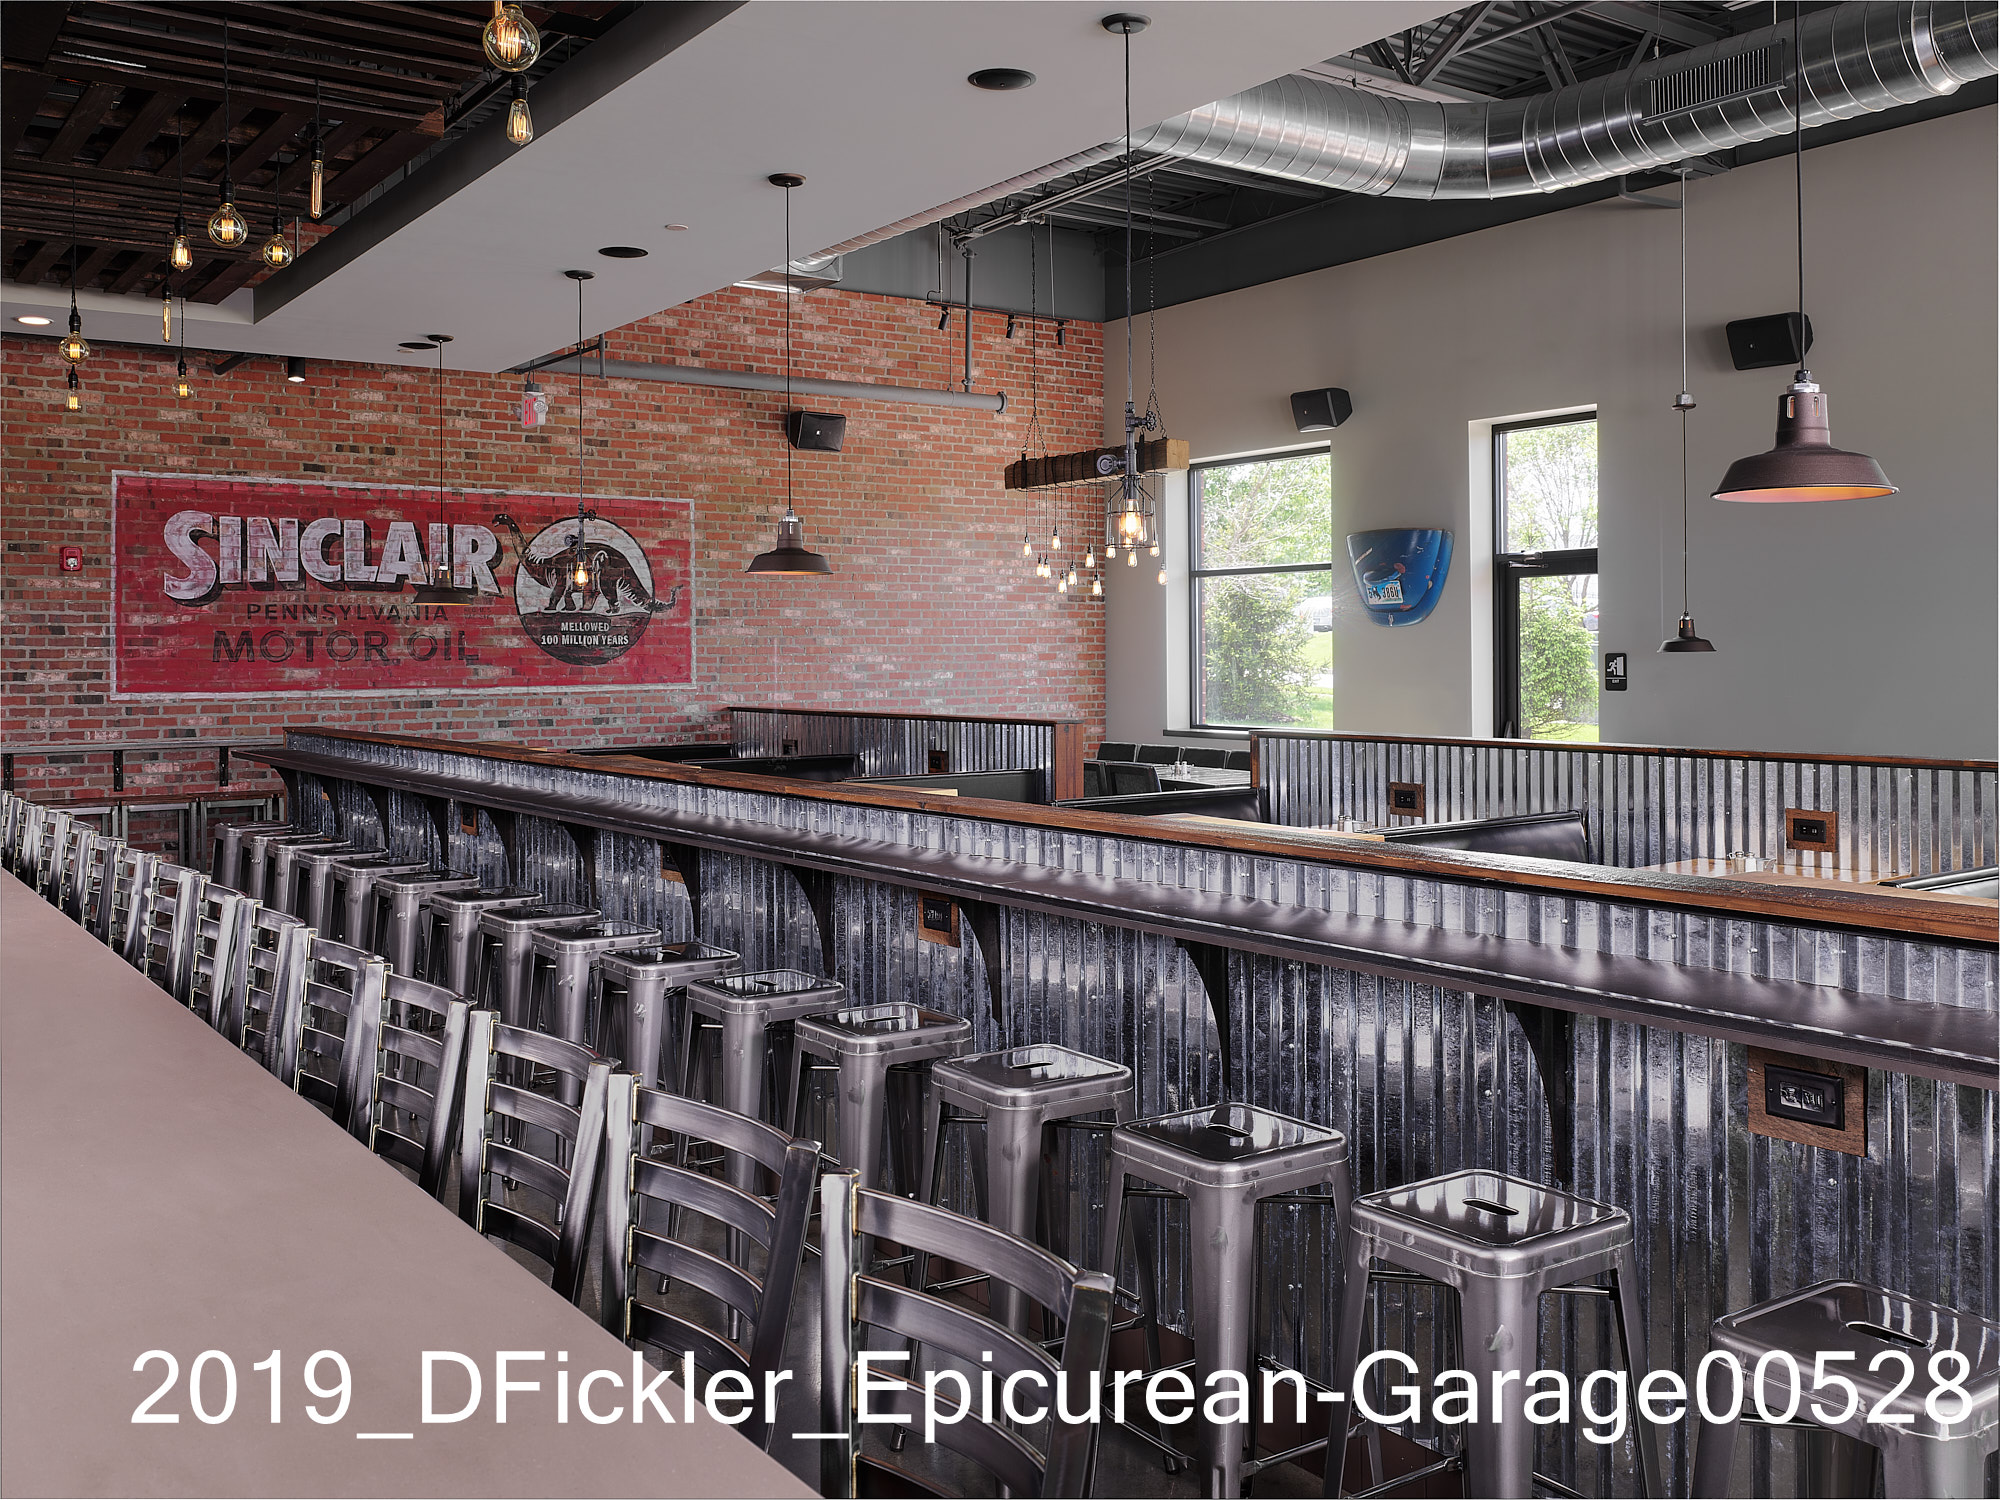 2019_DFickler_Epicurean-Garage00528.jpg